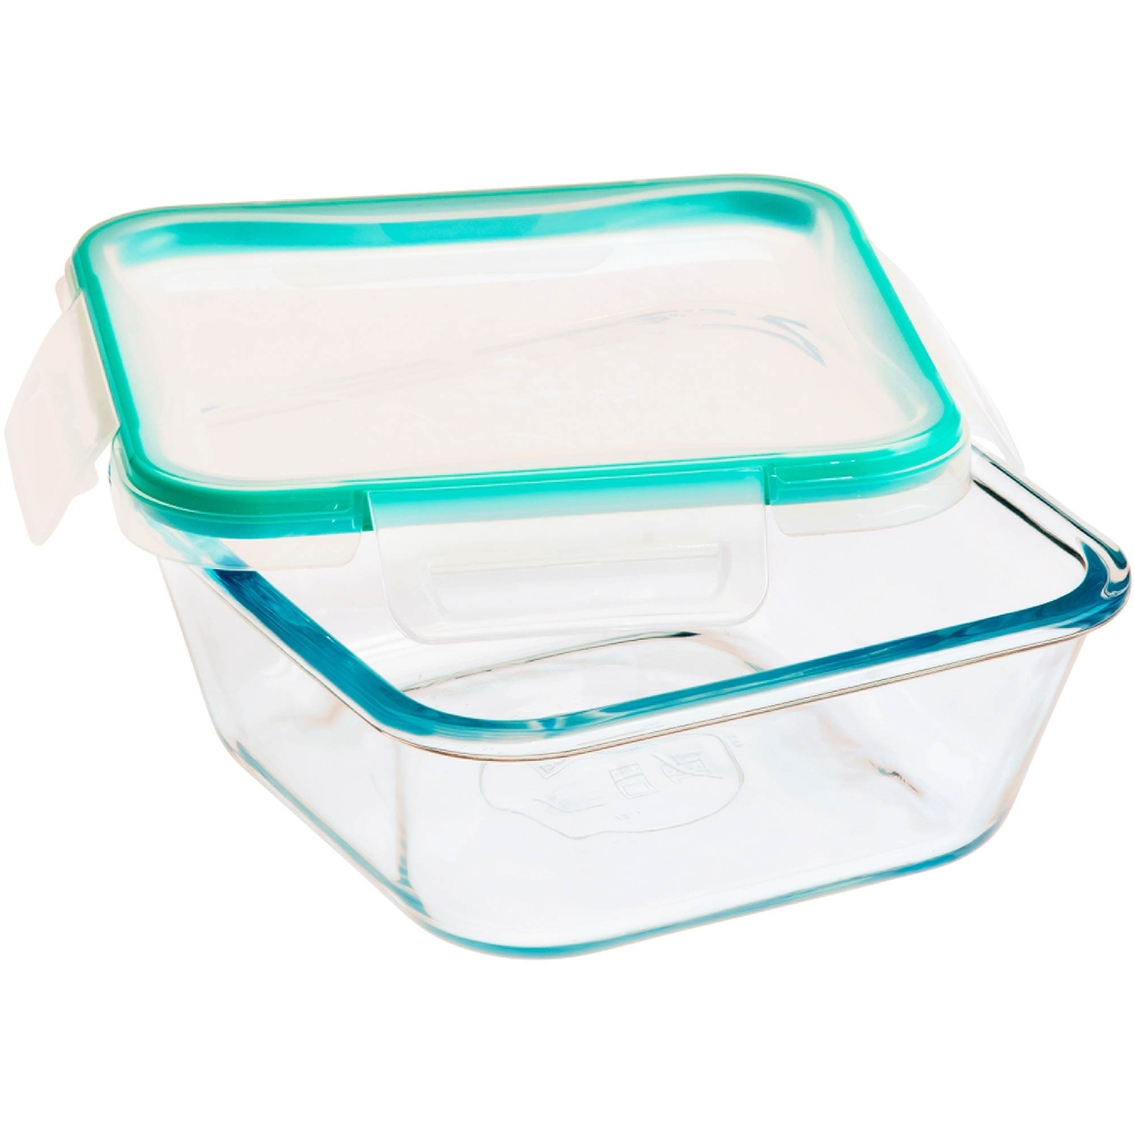 Snapware Total Solution Pyrex Glass 4 Cup Square Food Storage Food Storage Household Shop The Exchange